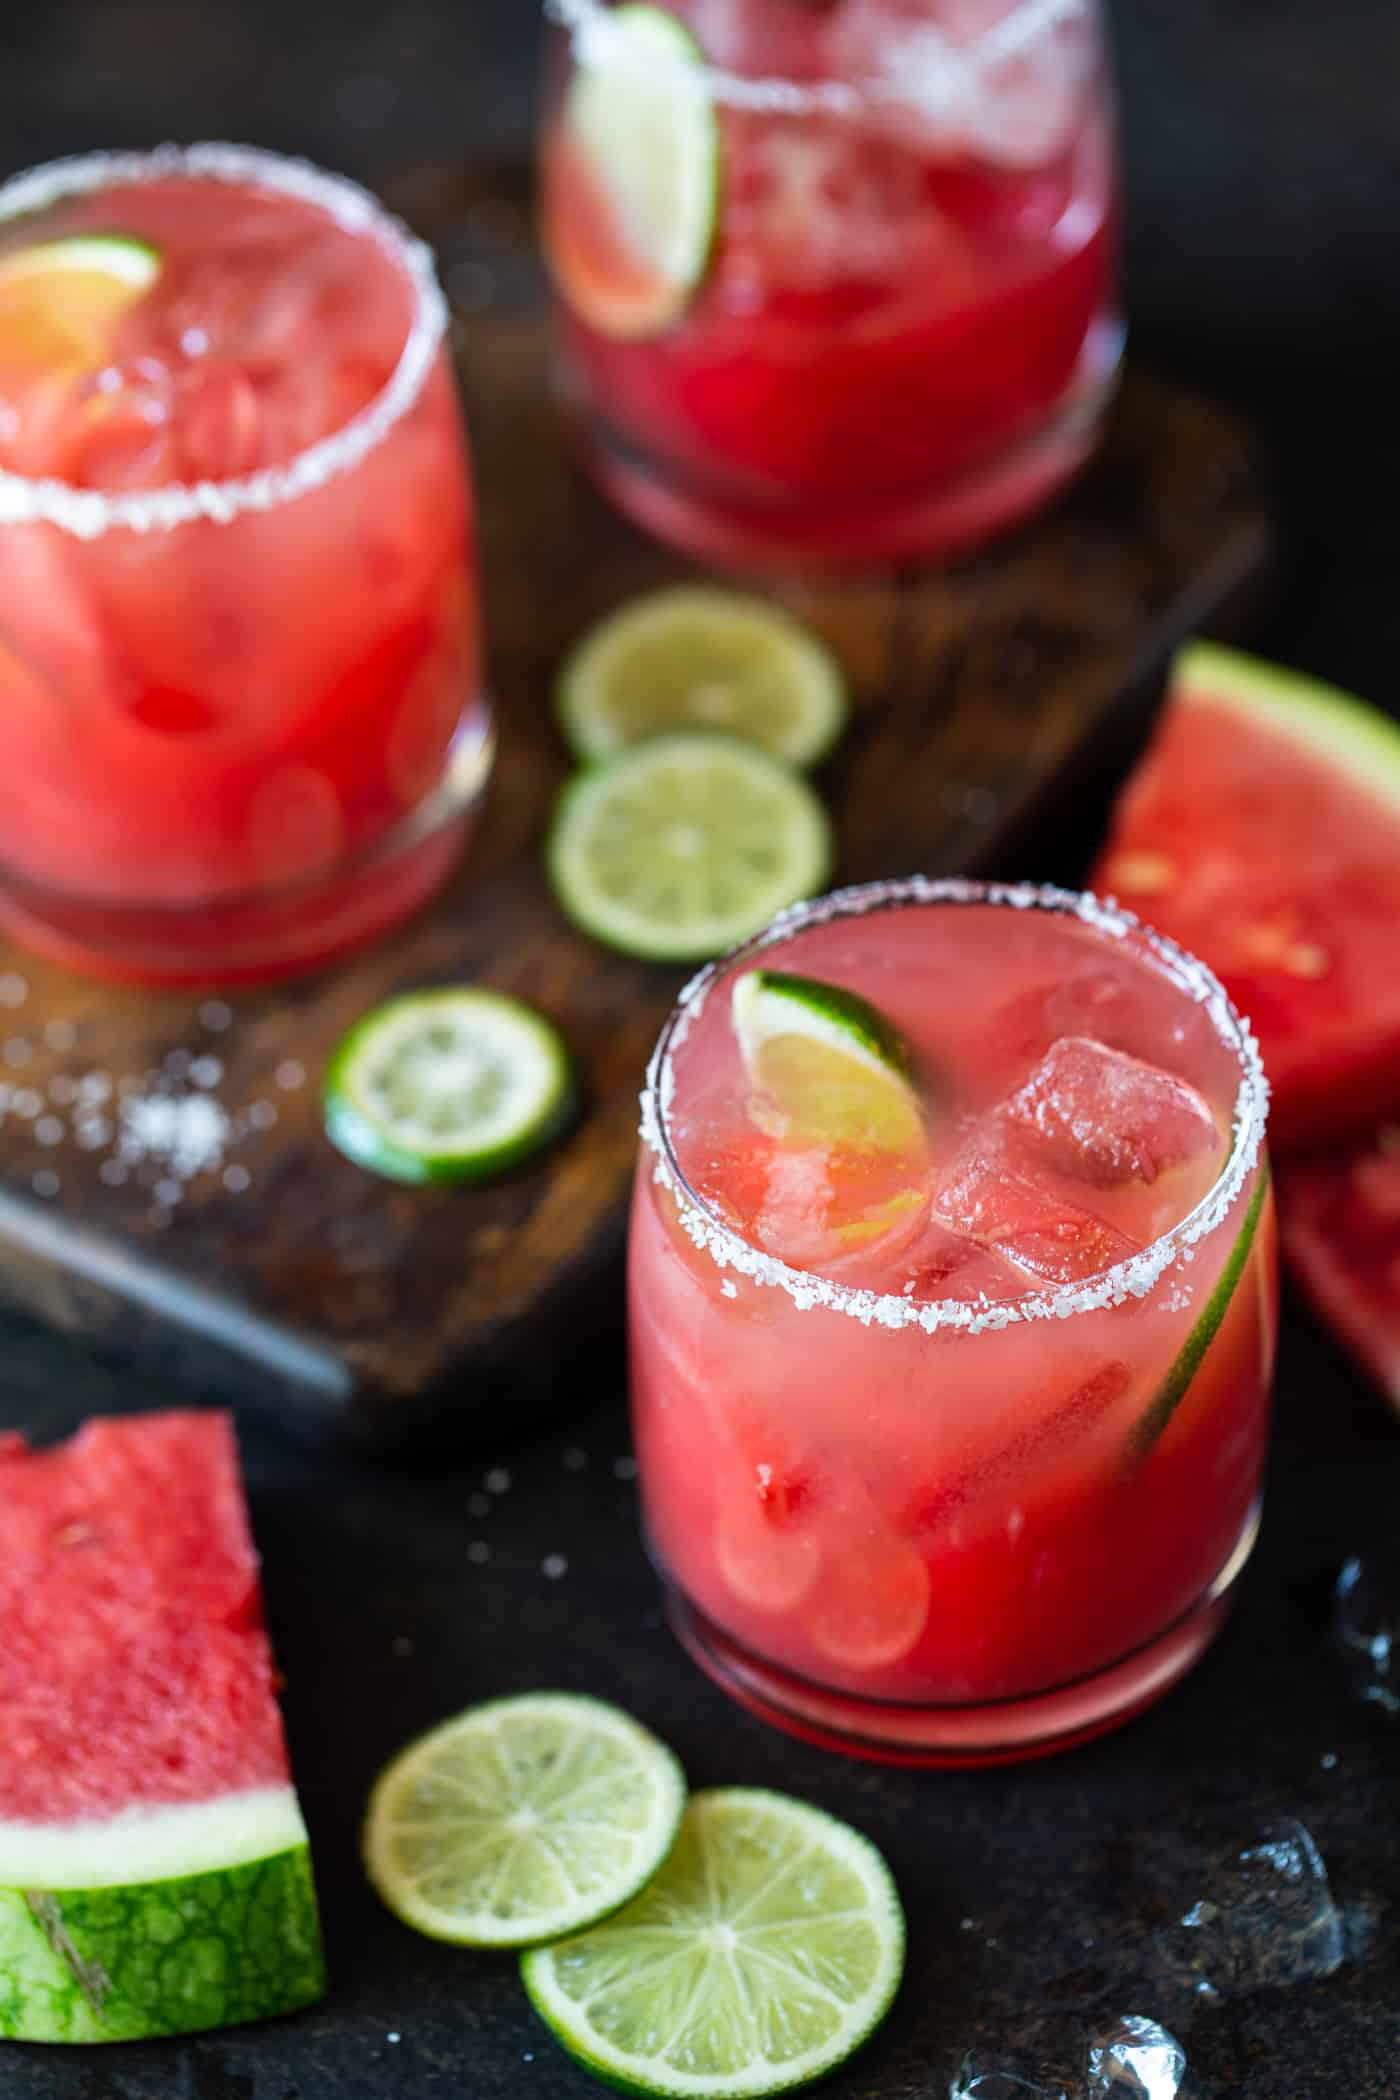 Lowball glasses with salted rims and filled with fresh watermelon margaritas on the rocks. Garnished with lime wheels and fresh watermelon chunks.